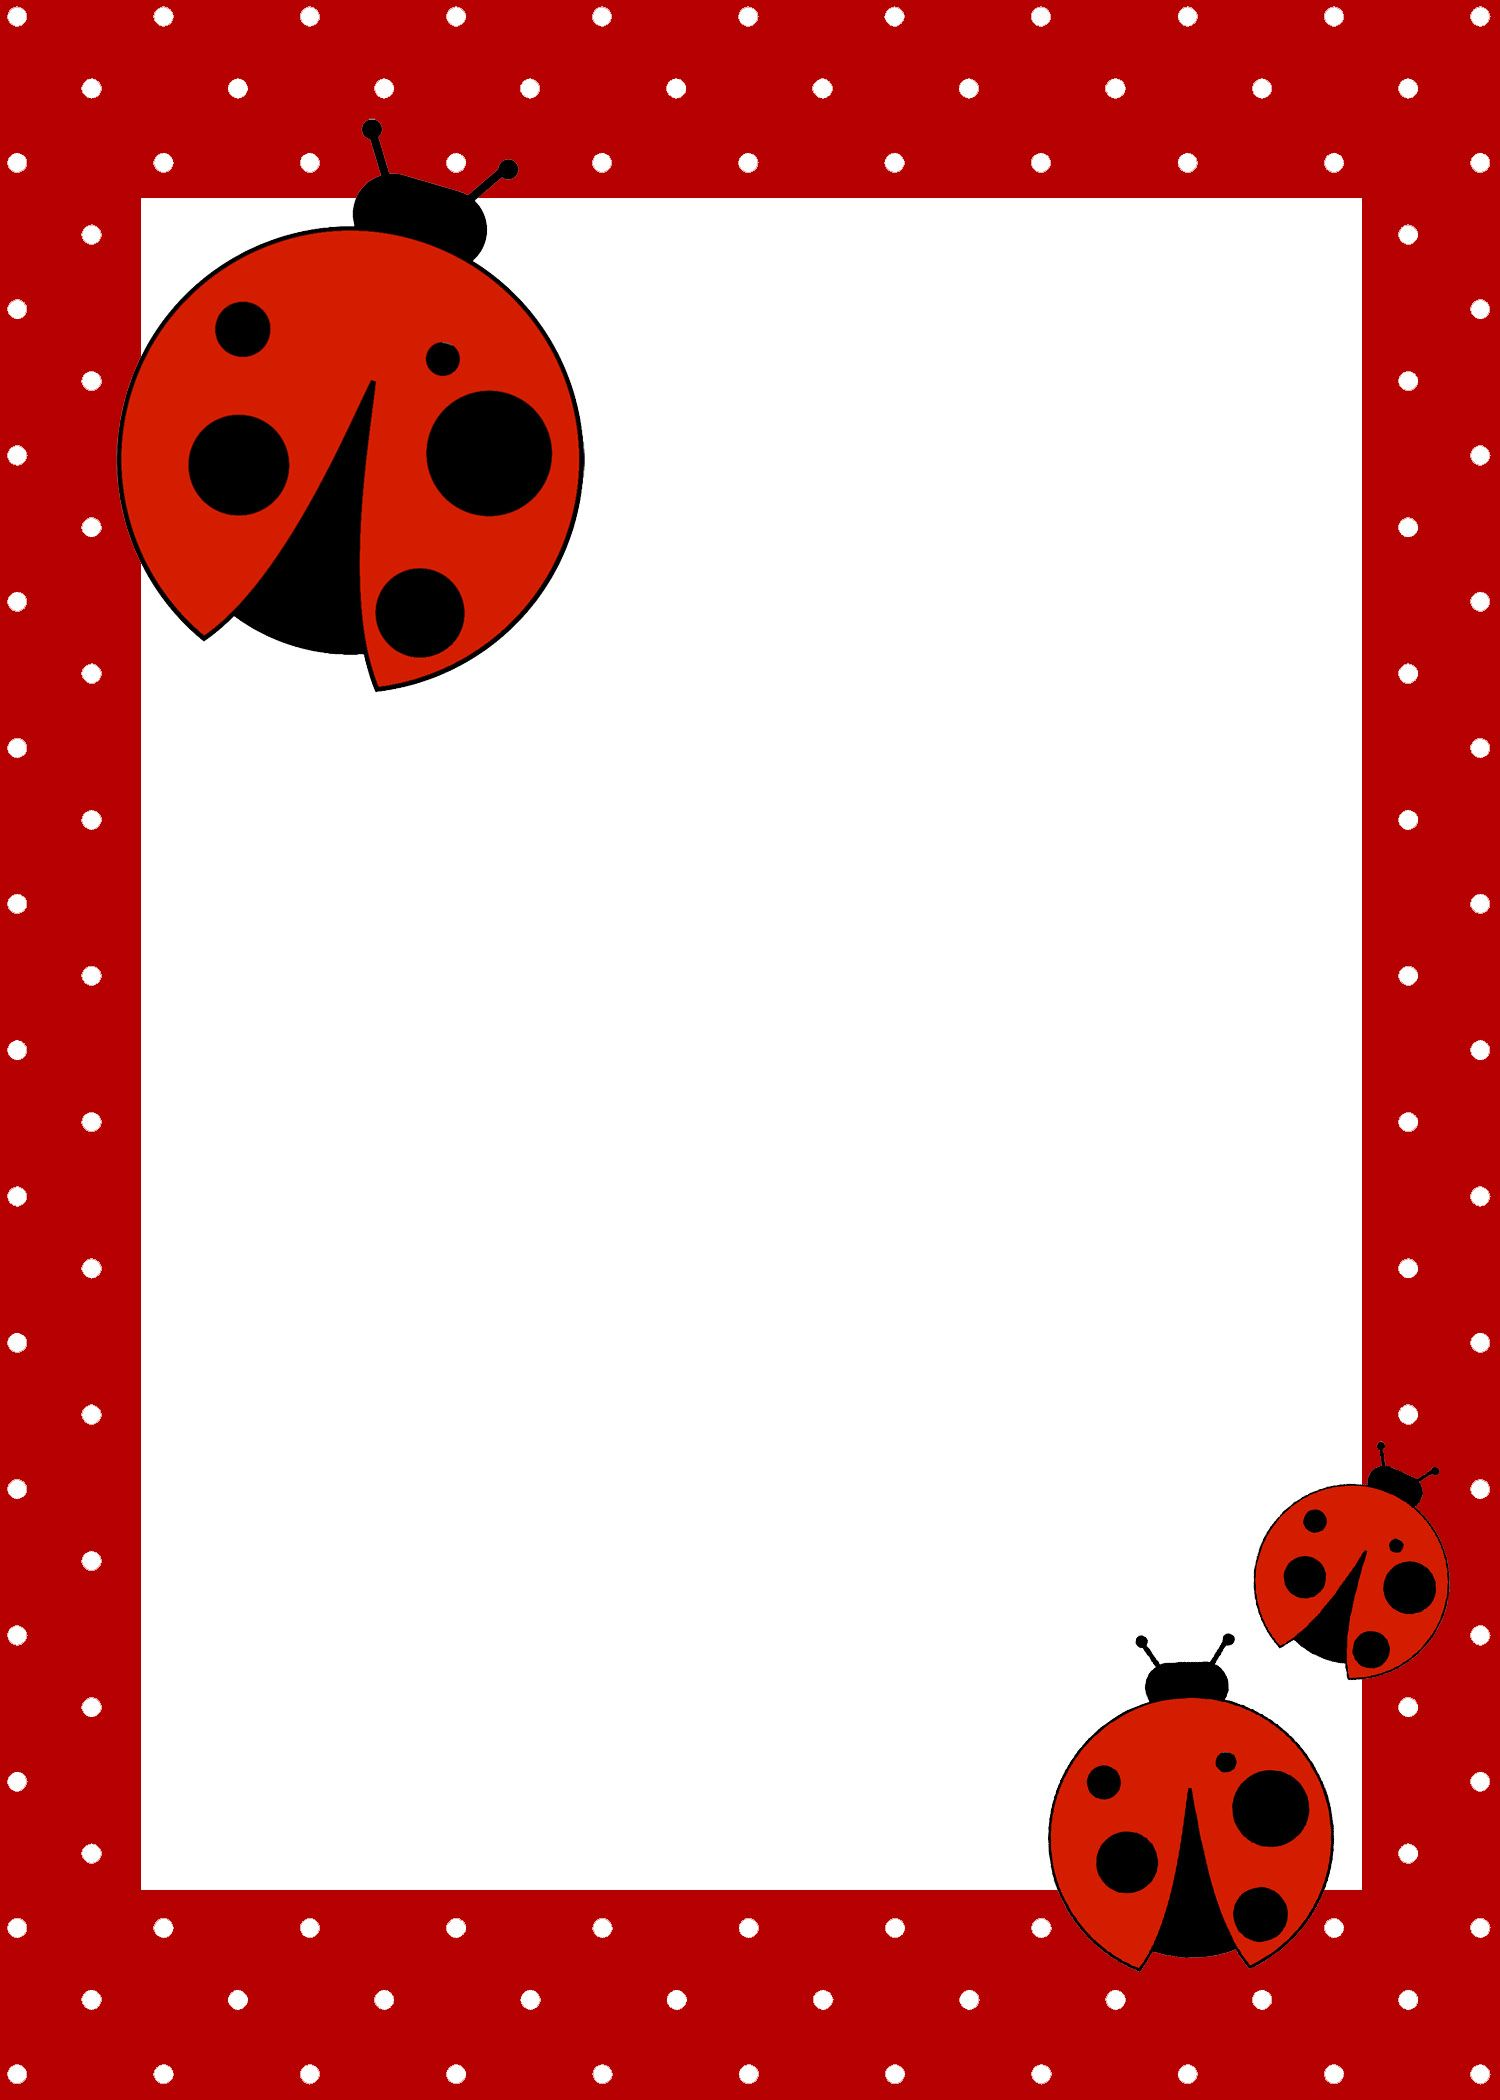 Free Printables Ladybug Birthday Invitation Garland Cupcake Holders Labels Etc From How To Nest For Less